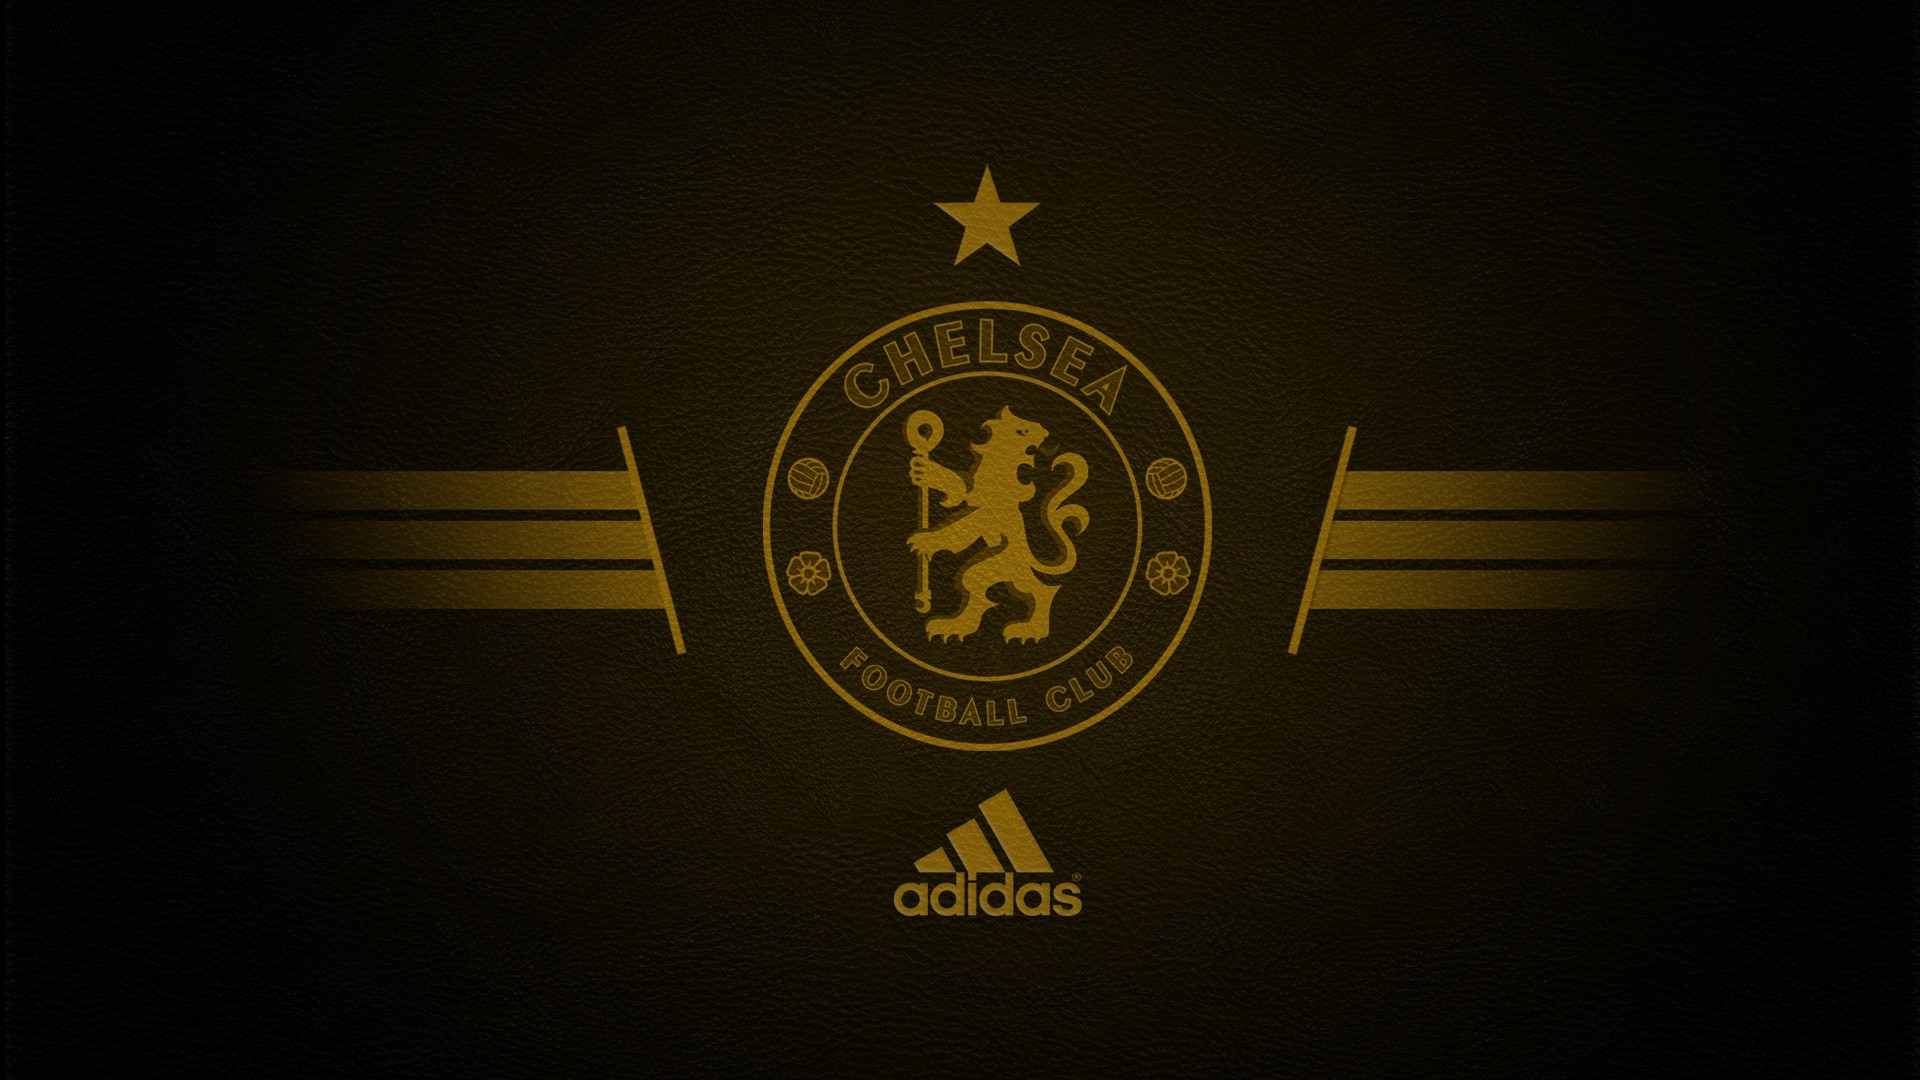 Wallpaper chelsea adidas soccer football club background pic download voltagebd Choice Image